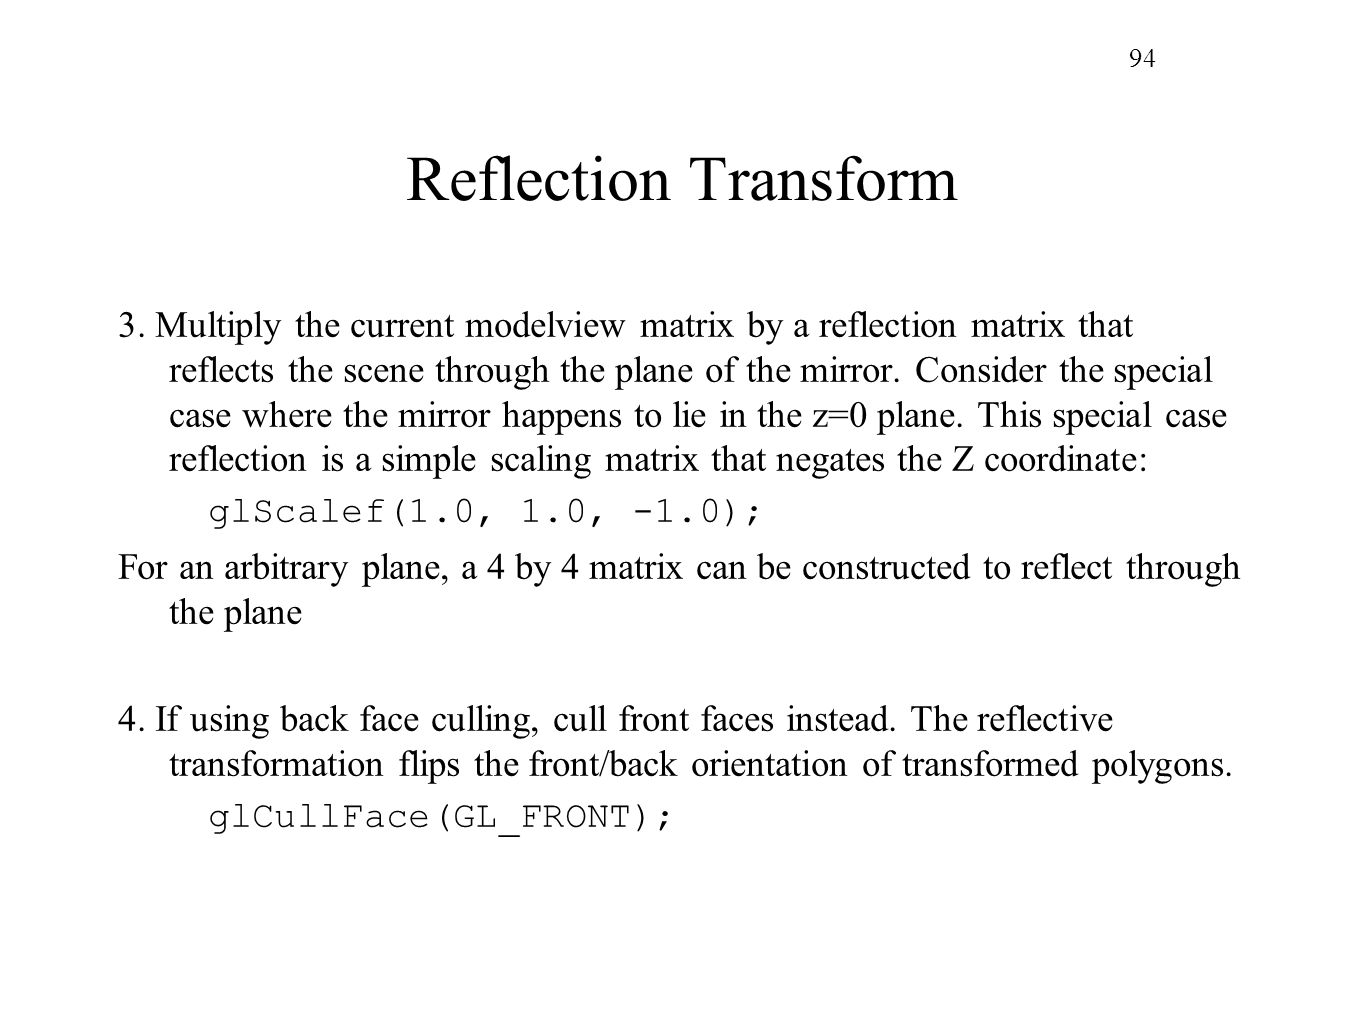 94 Reflection Transform.